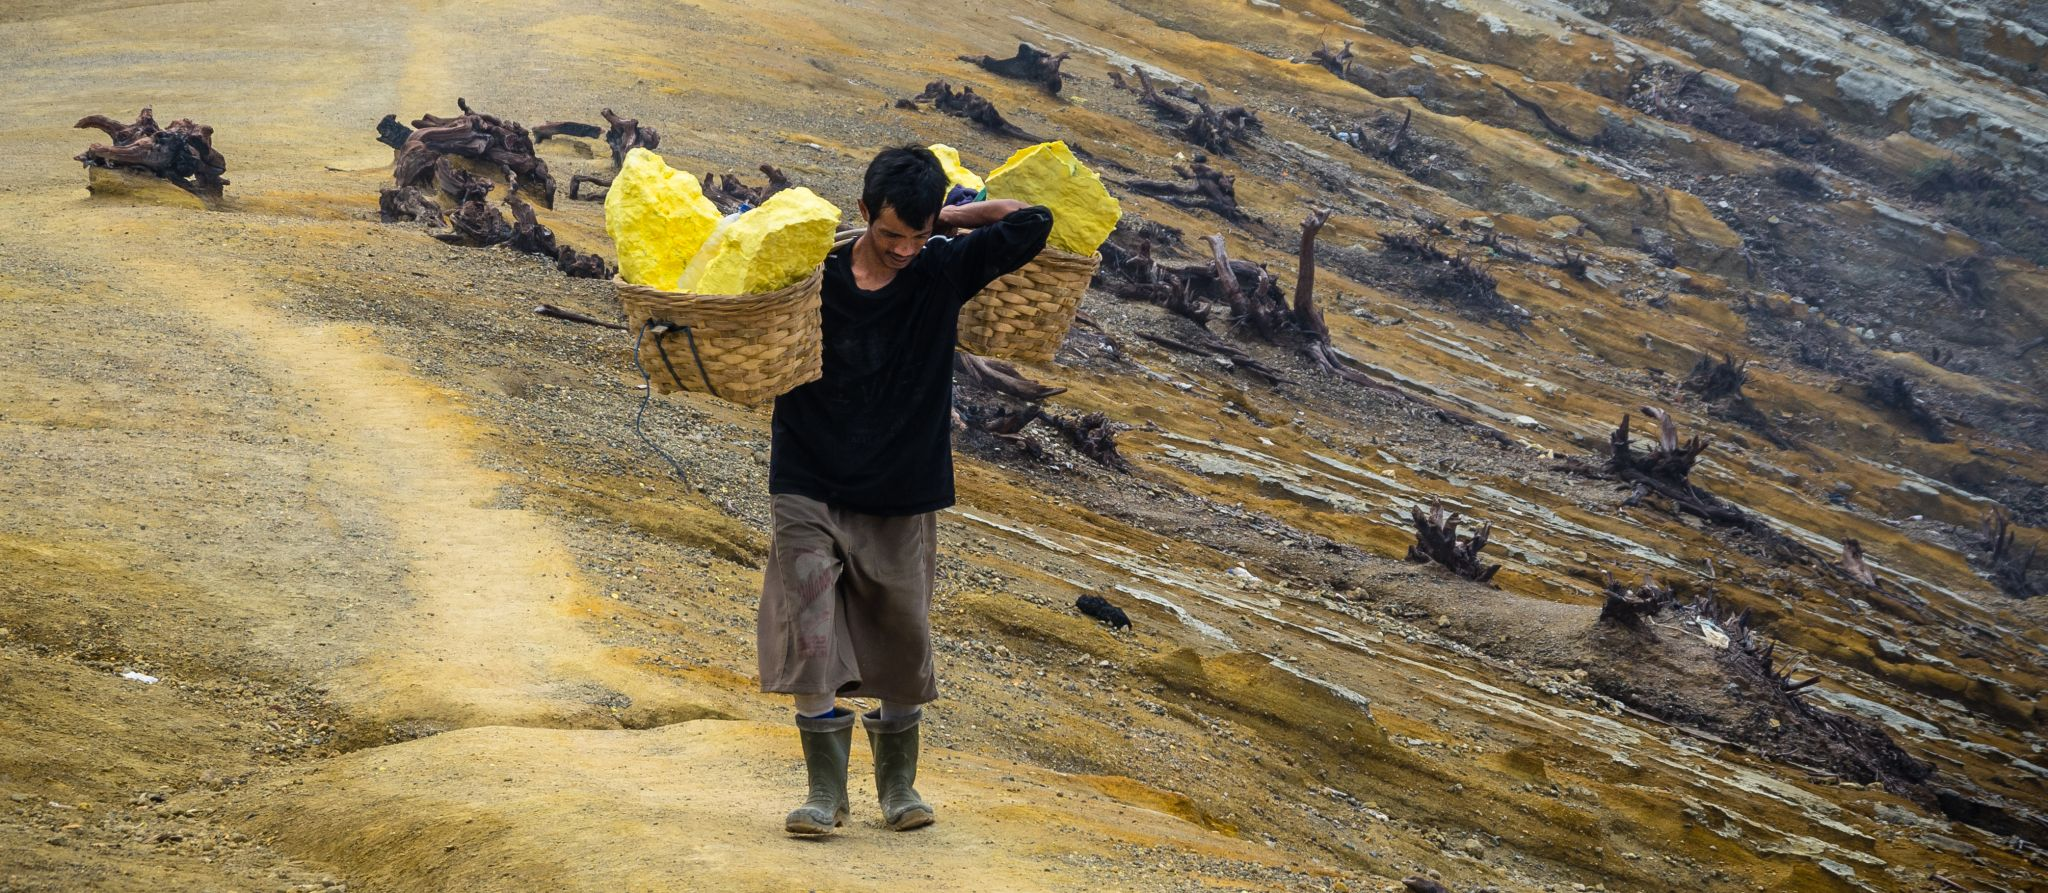 Appreciation of the sulfur carriers at Ijen volcano, Indonesia